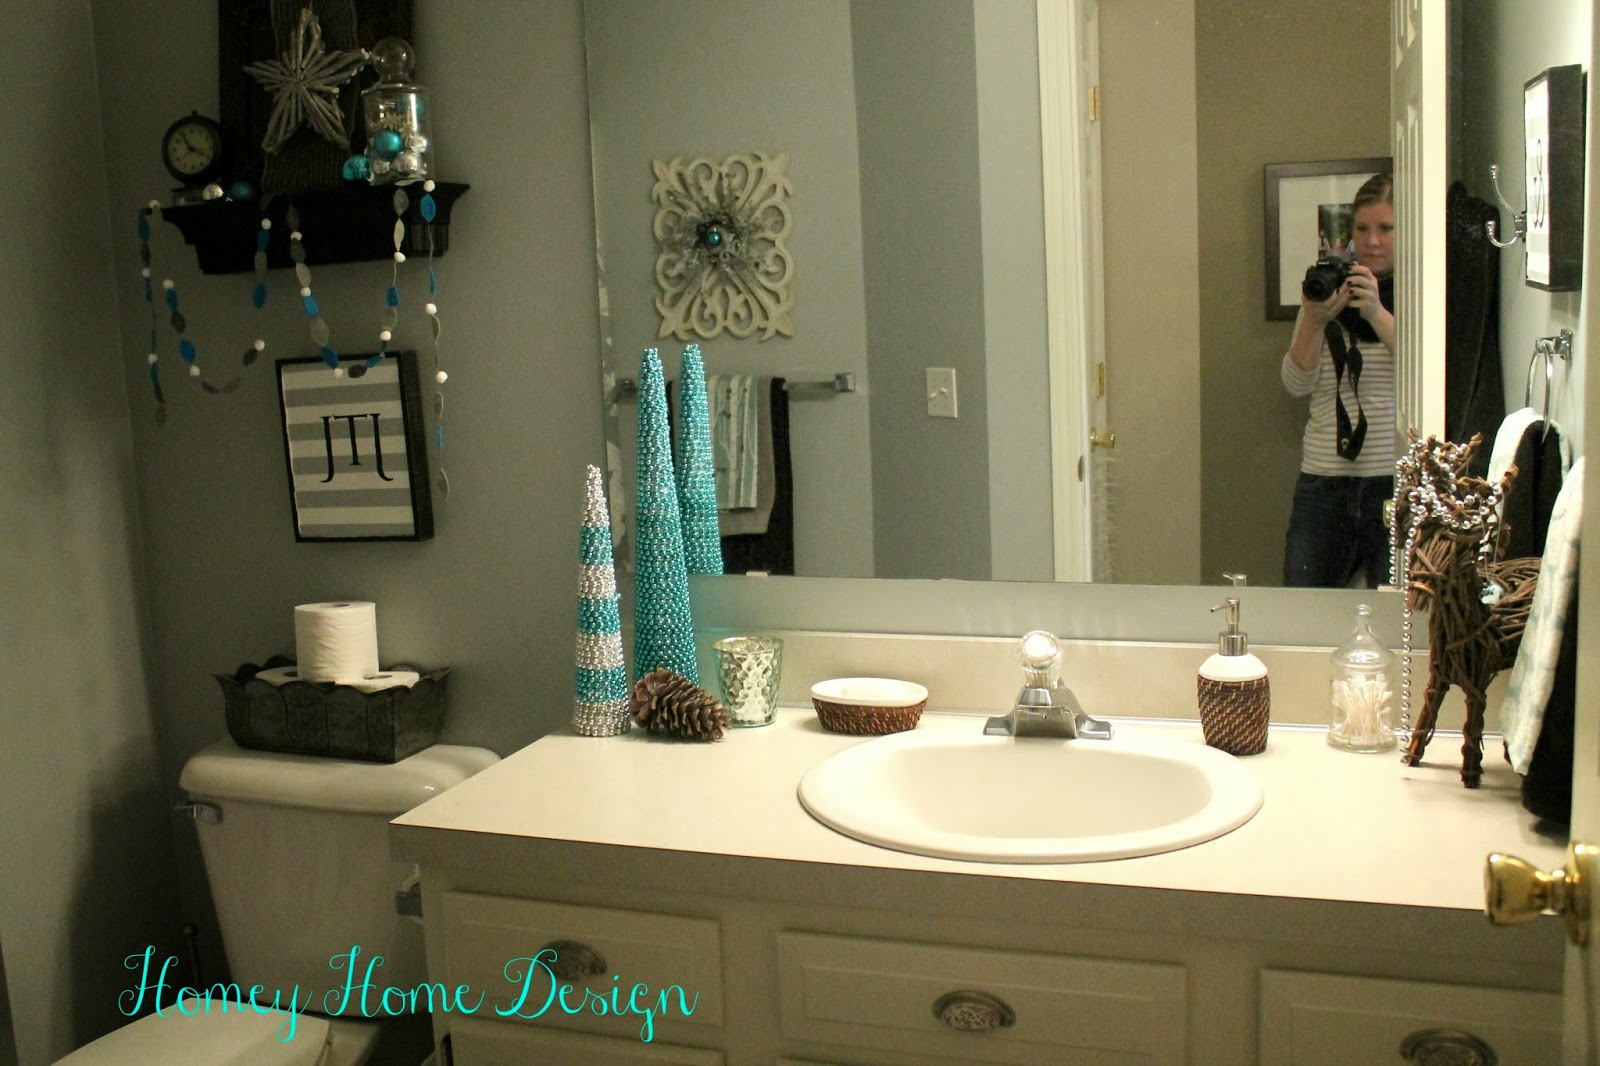 Homey home design bathroom christmas ideas - Decorated bathrooms ...